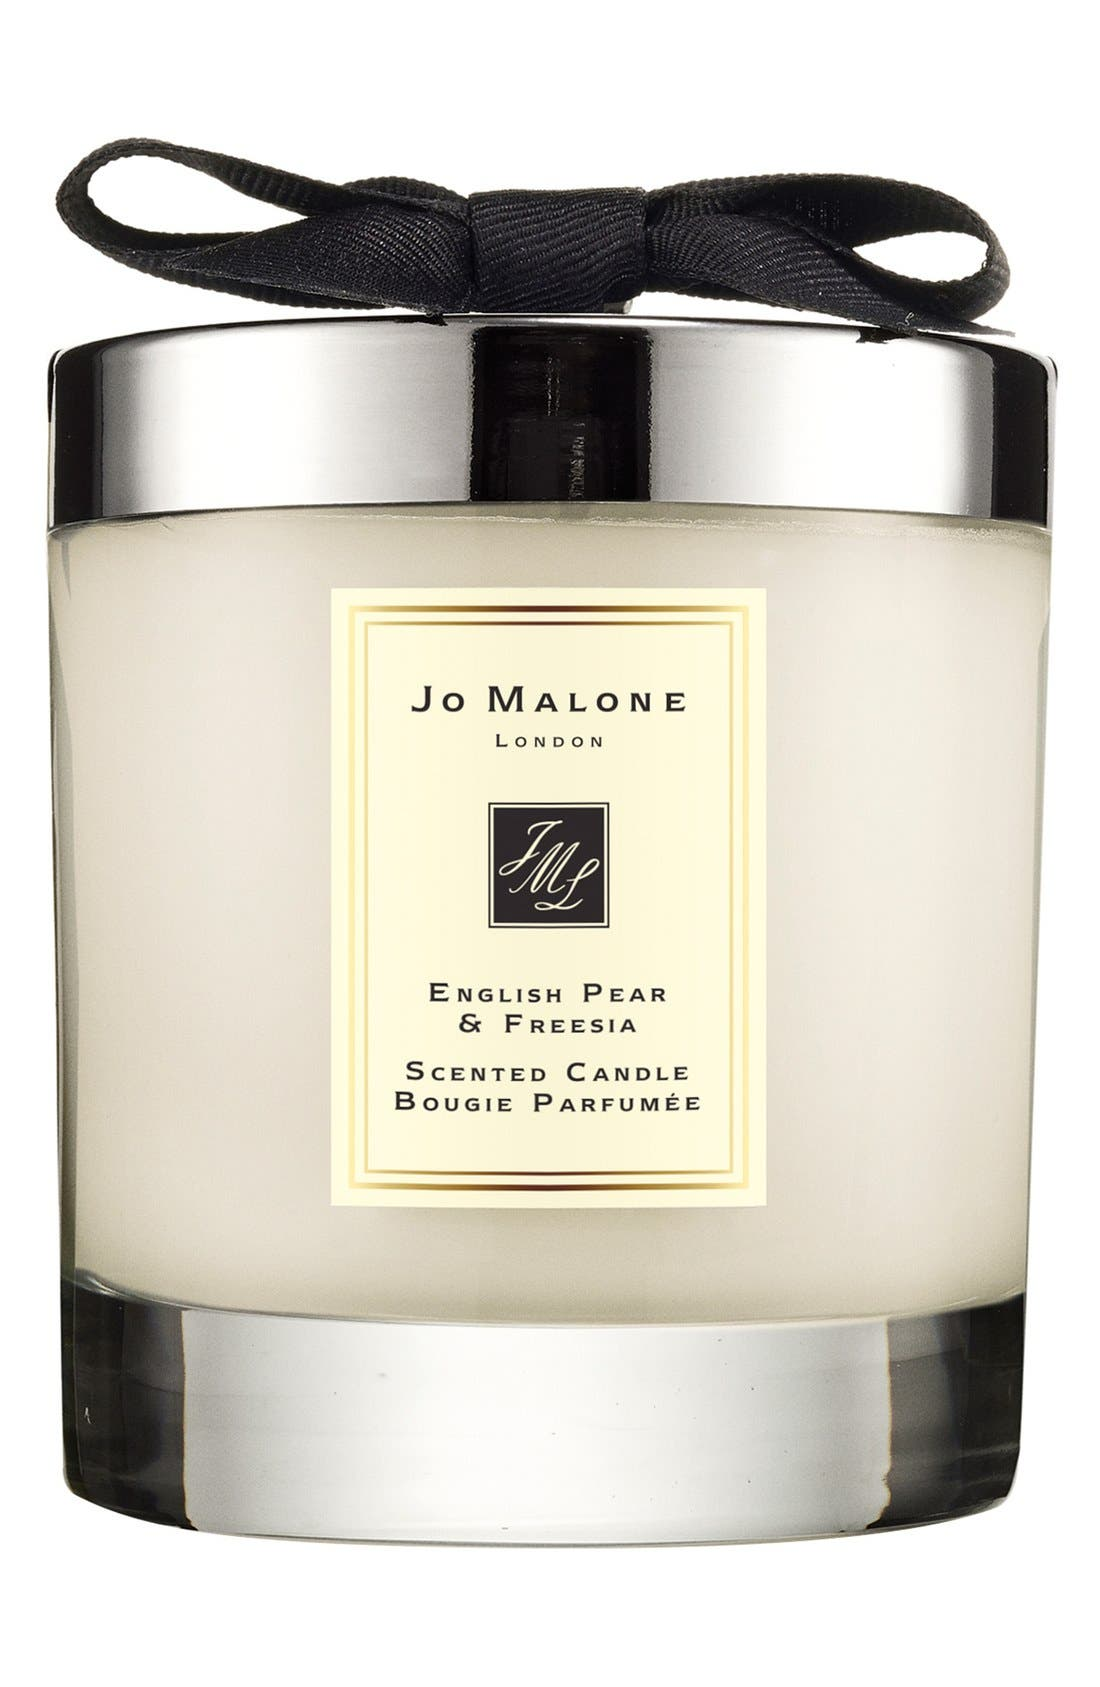 JO MALONE LONDON™ Jo Malone™ 'English Pear &